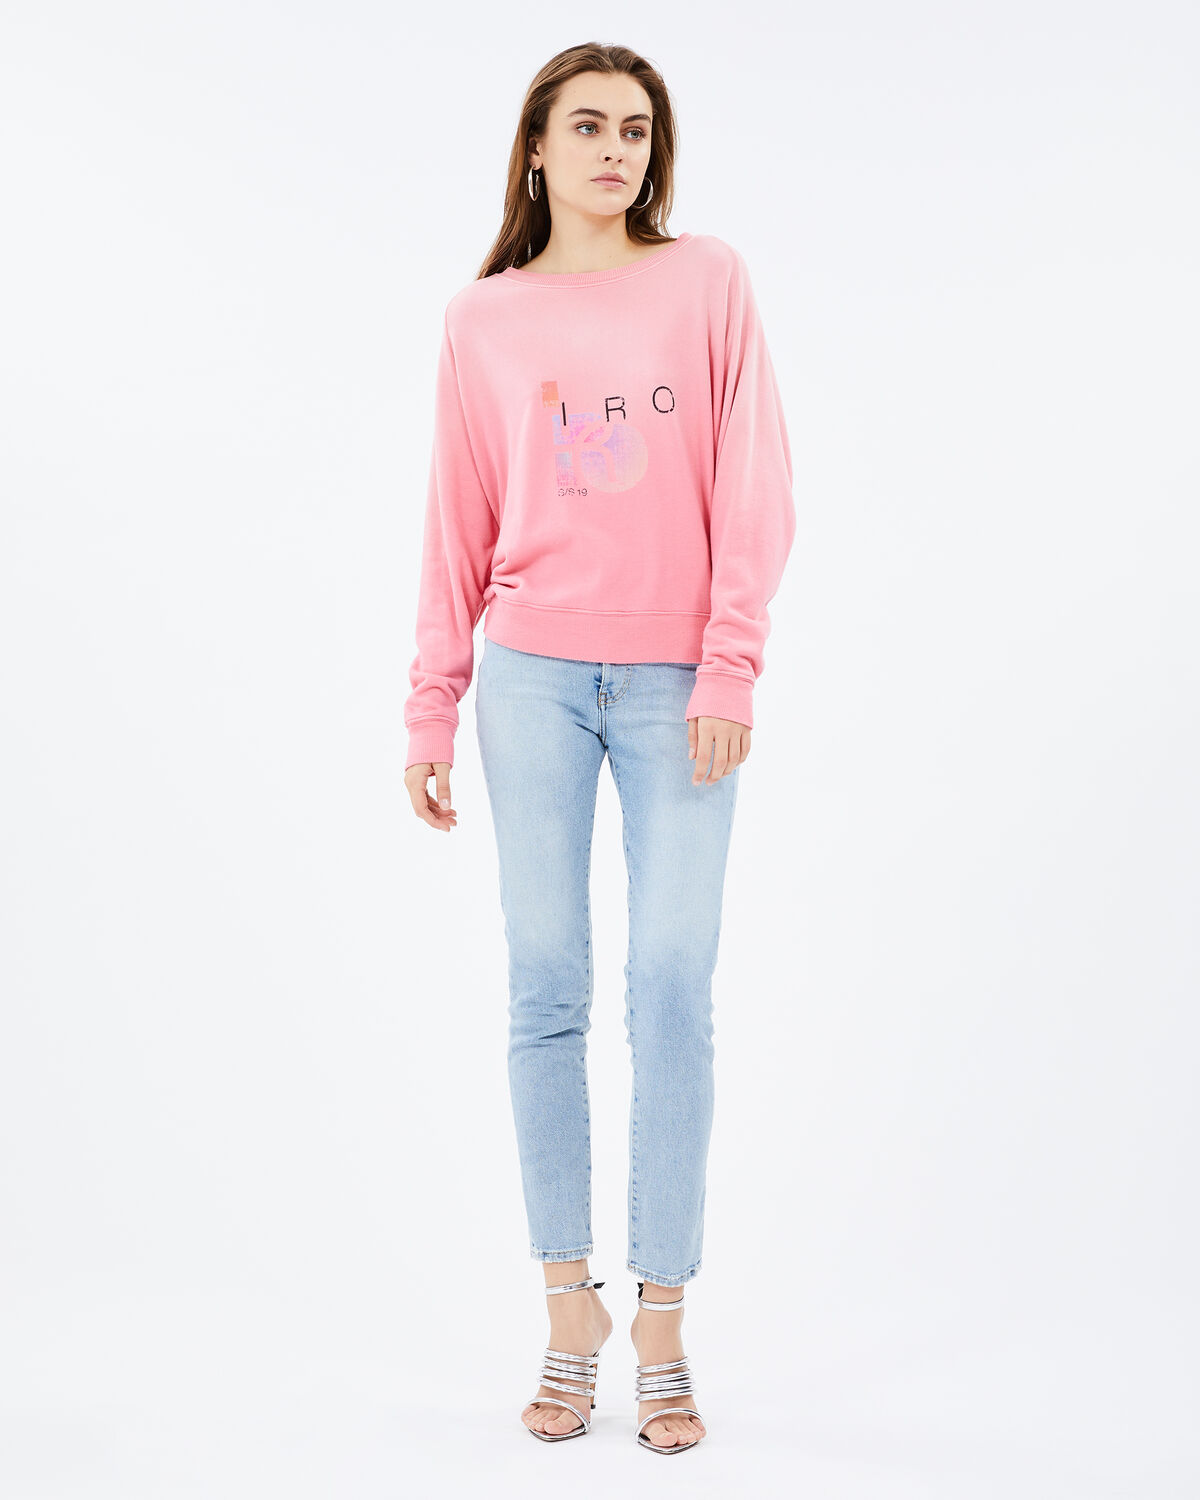 Advent Sweater Candy Pink by IRO Paris